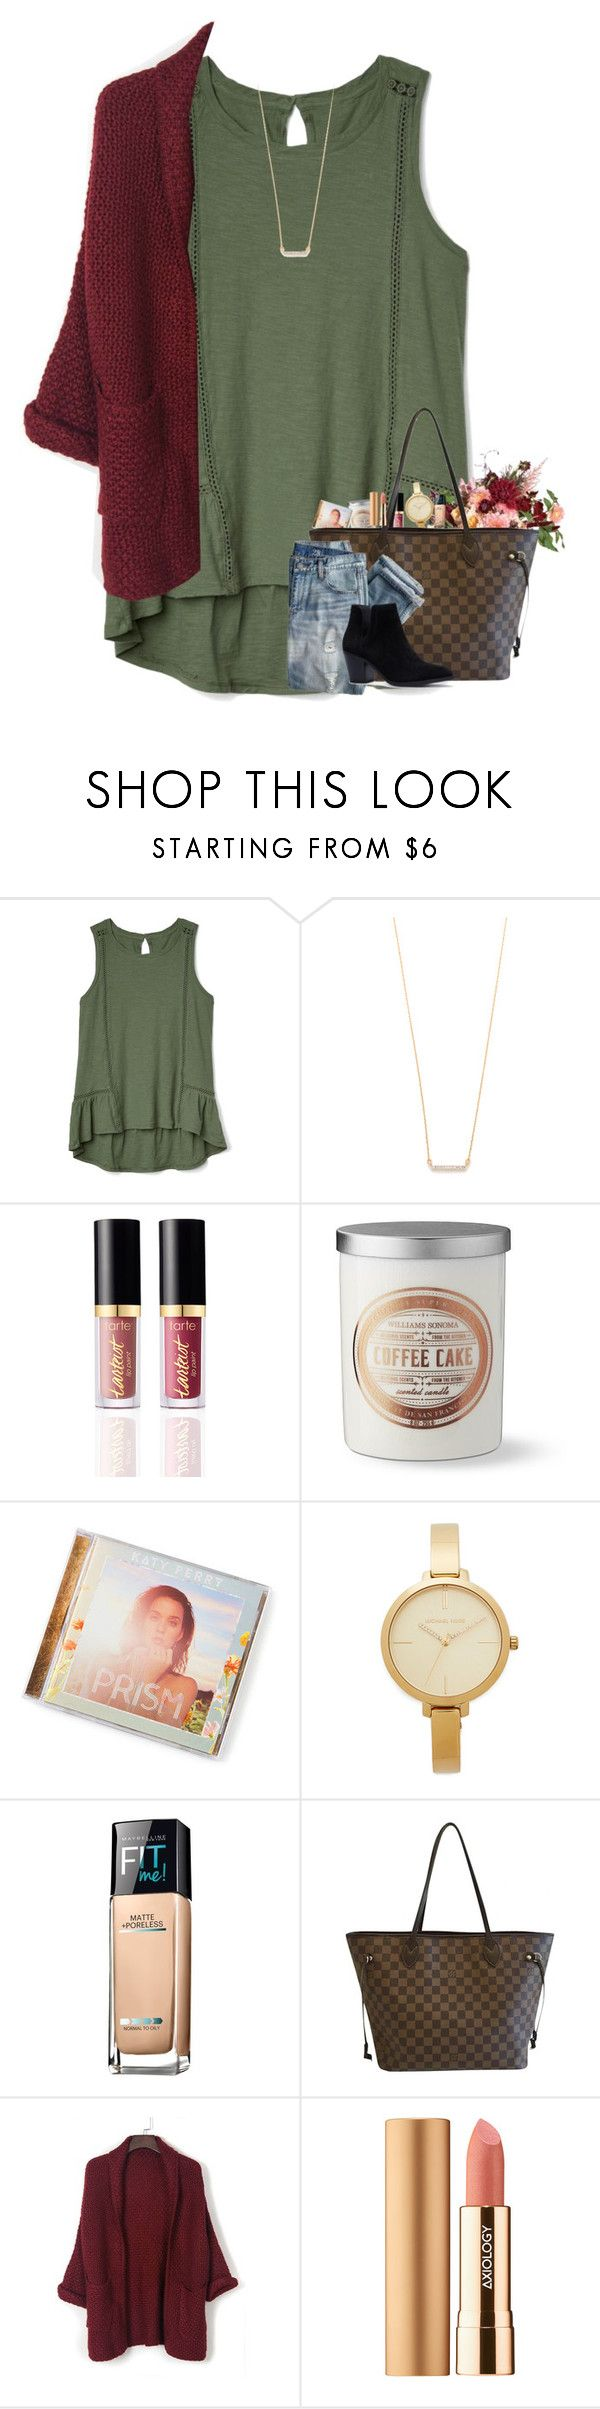 """""""Don't expect the best"""" by preppyandperfect ❤ liked on Polyvore featuring Gap, Adina Reyter, Williams-Sonoma, Michael Kors, Maybelline, Louis Vuitton, J.Crew, WithChic and Axiology"""